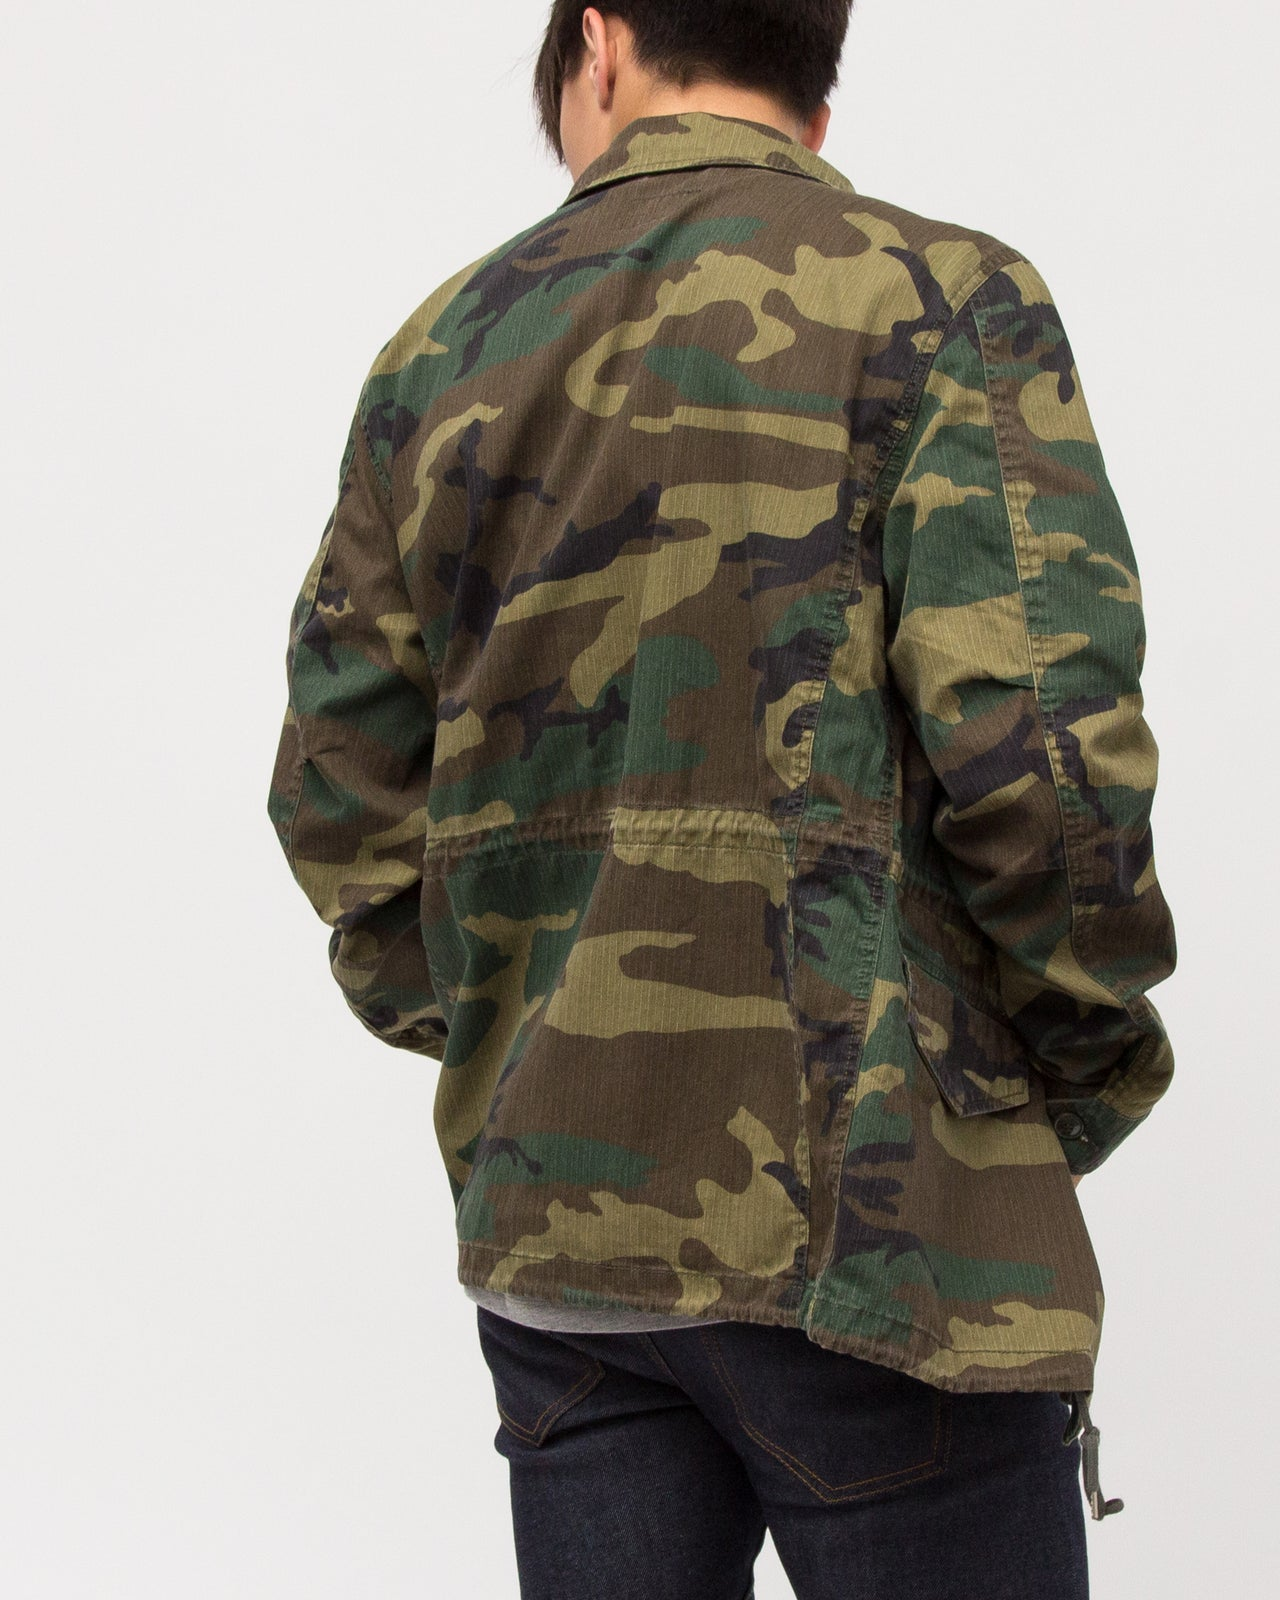 Revival M 65 Jacket - Color: Woodland Camo | Multi